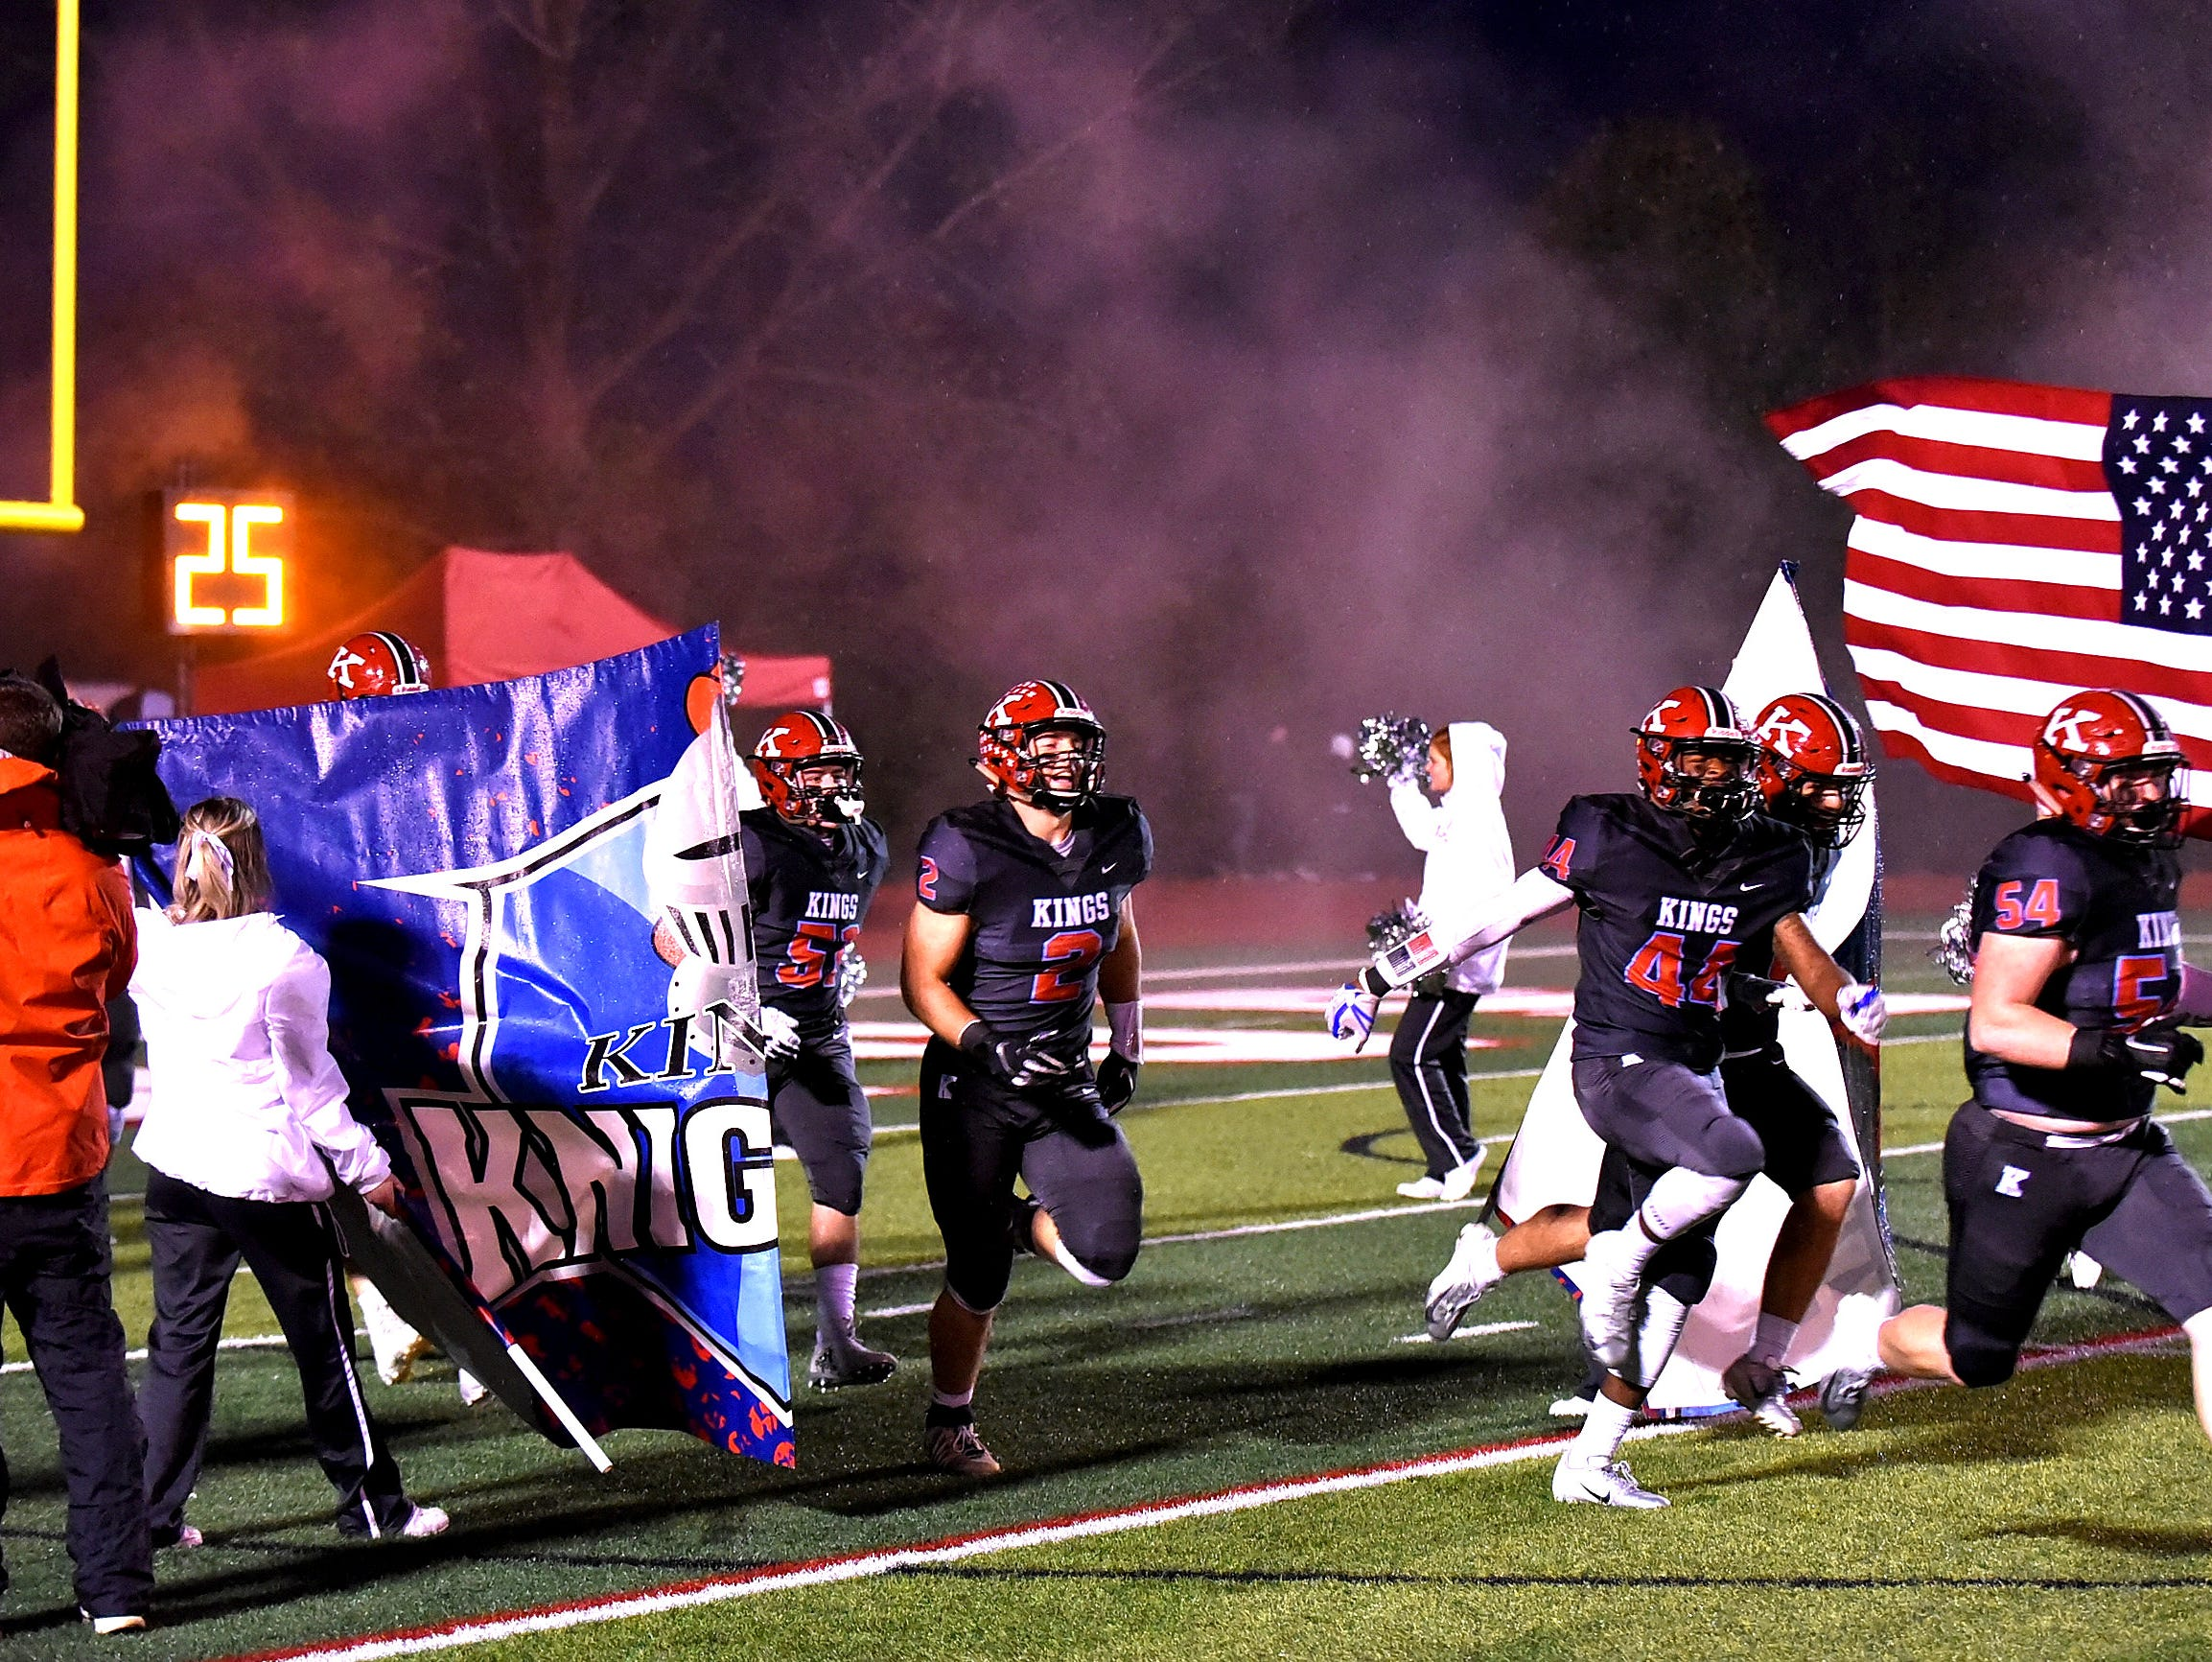 The Kings Knights take the field in preparation for the Division 2 Region quarterfinal playoff game, November 2, 2018.